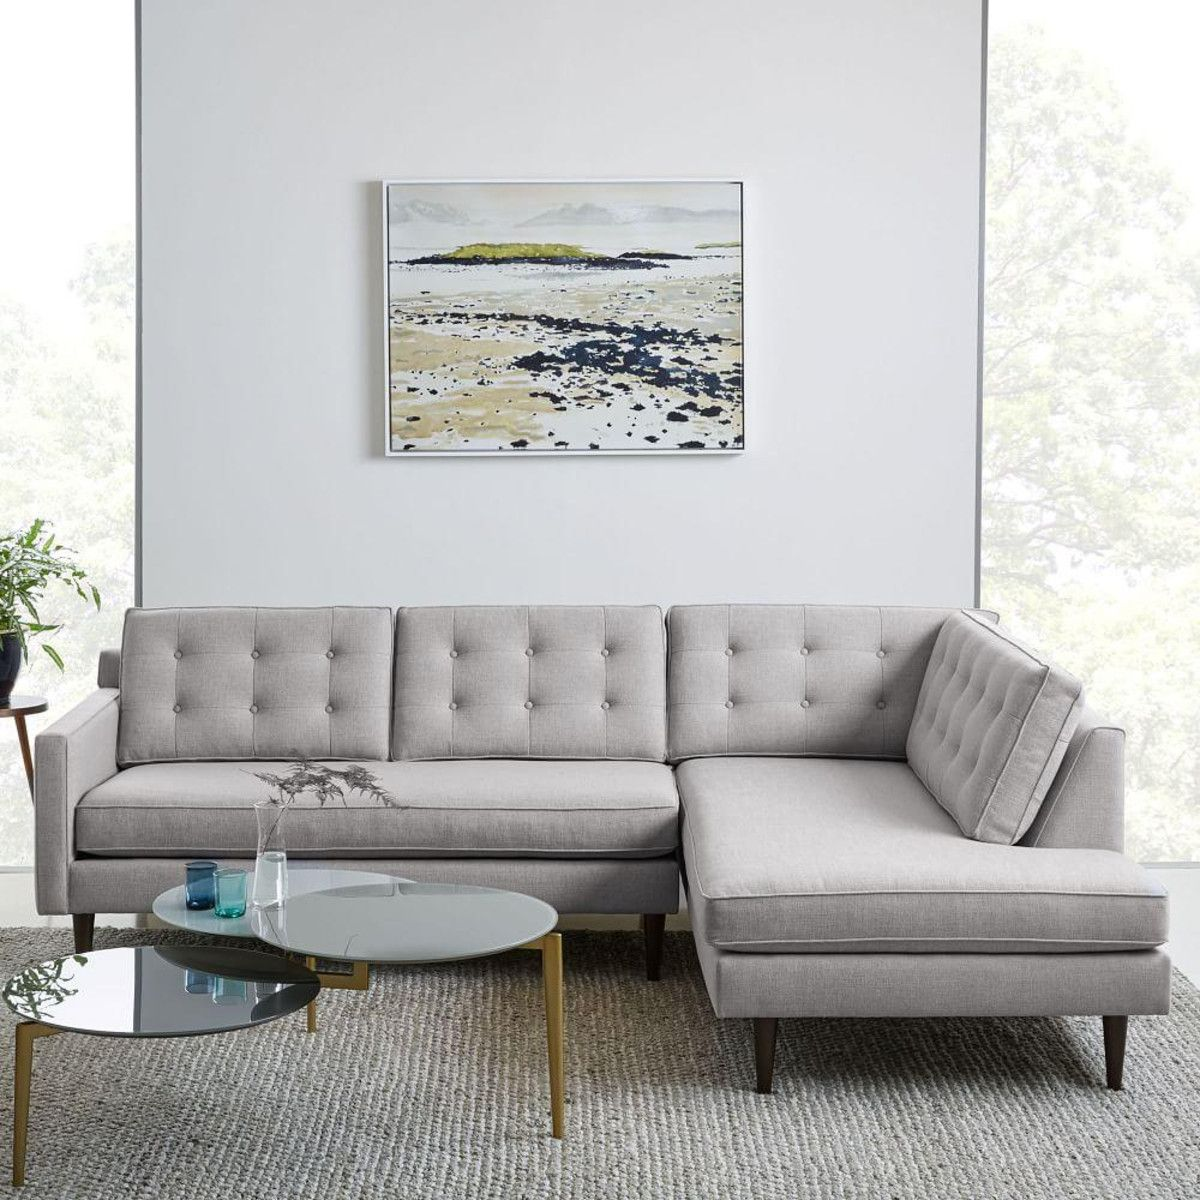 Drake 3 Seater Chaise Modular Sofa 254 Cm Sectional Mid Century Sectional Furniture